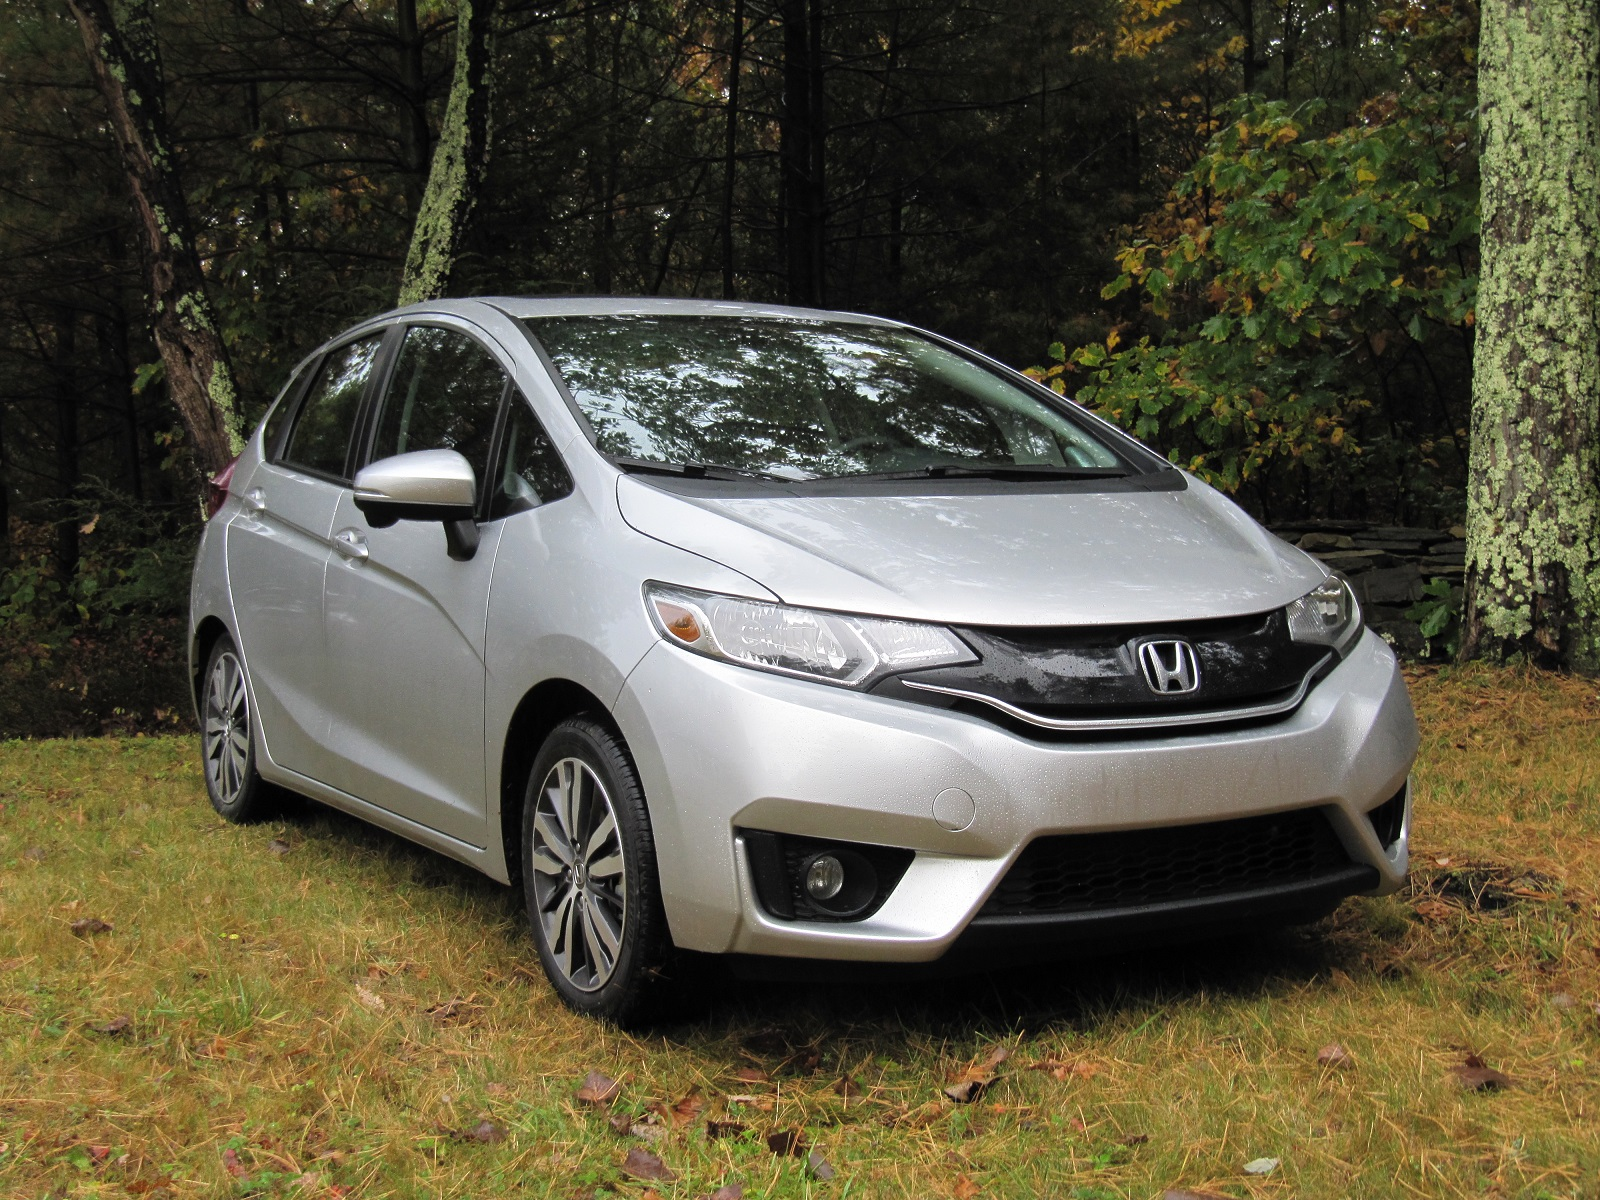 2015 Honda Fit Gas Mileage: True 40-MPG Subcompact, Or Not? (Page 2)